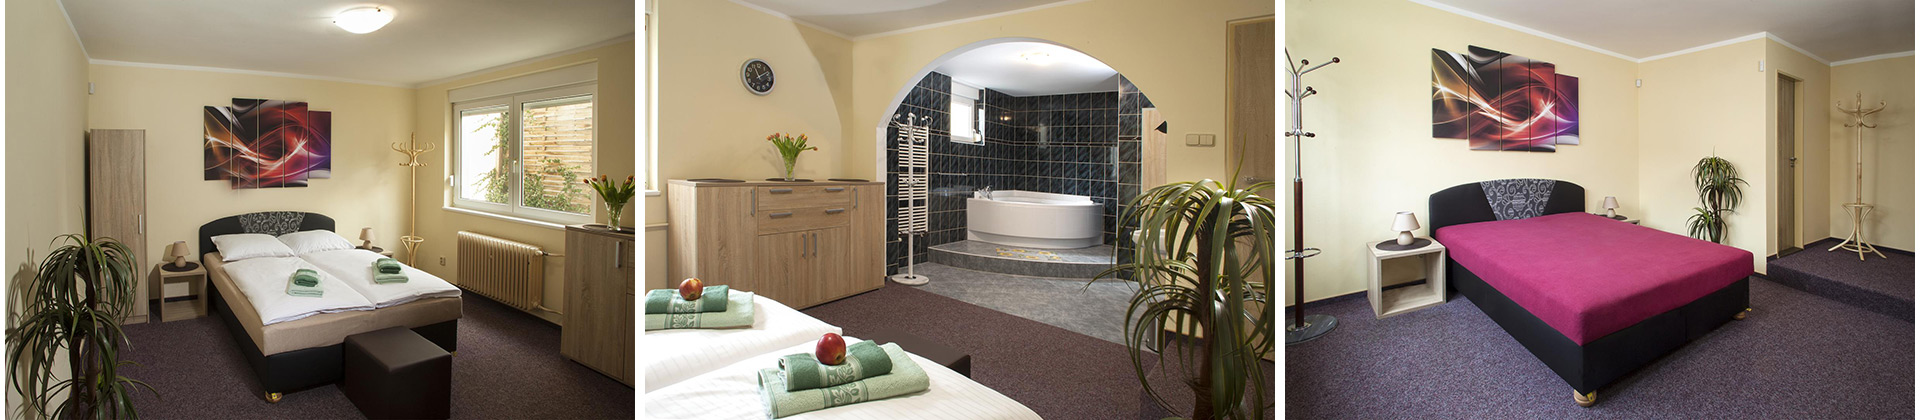 Pension Relax - azyl pro milence